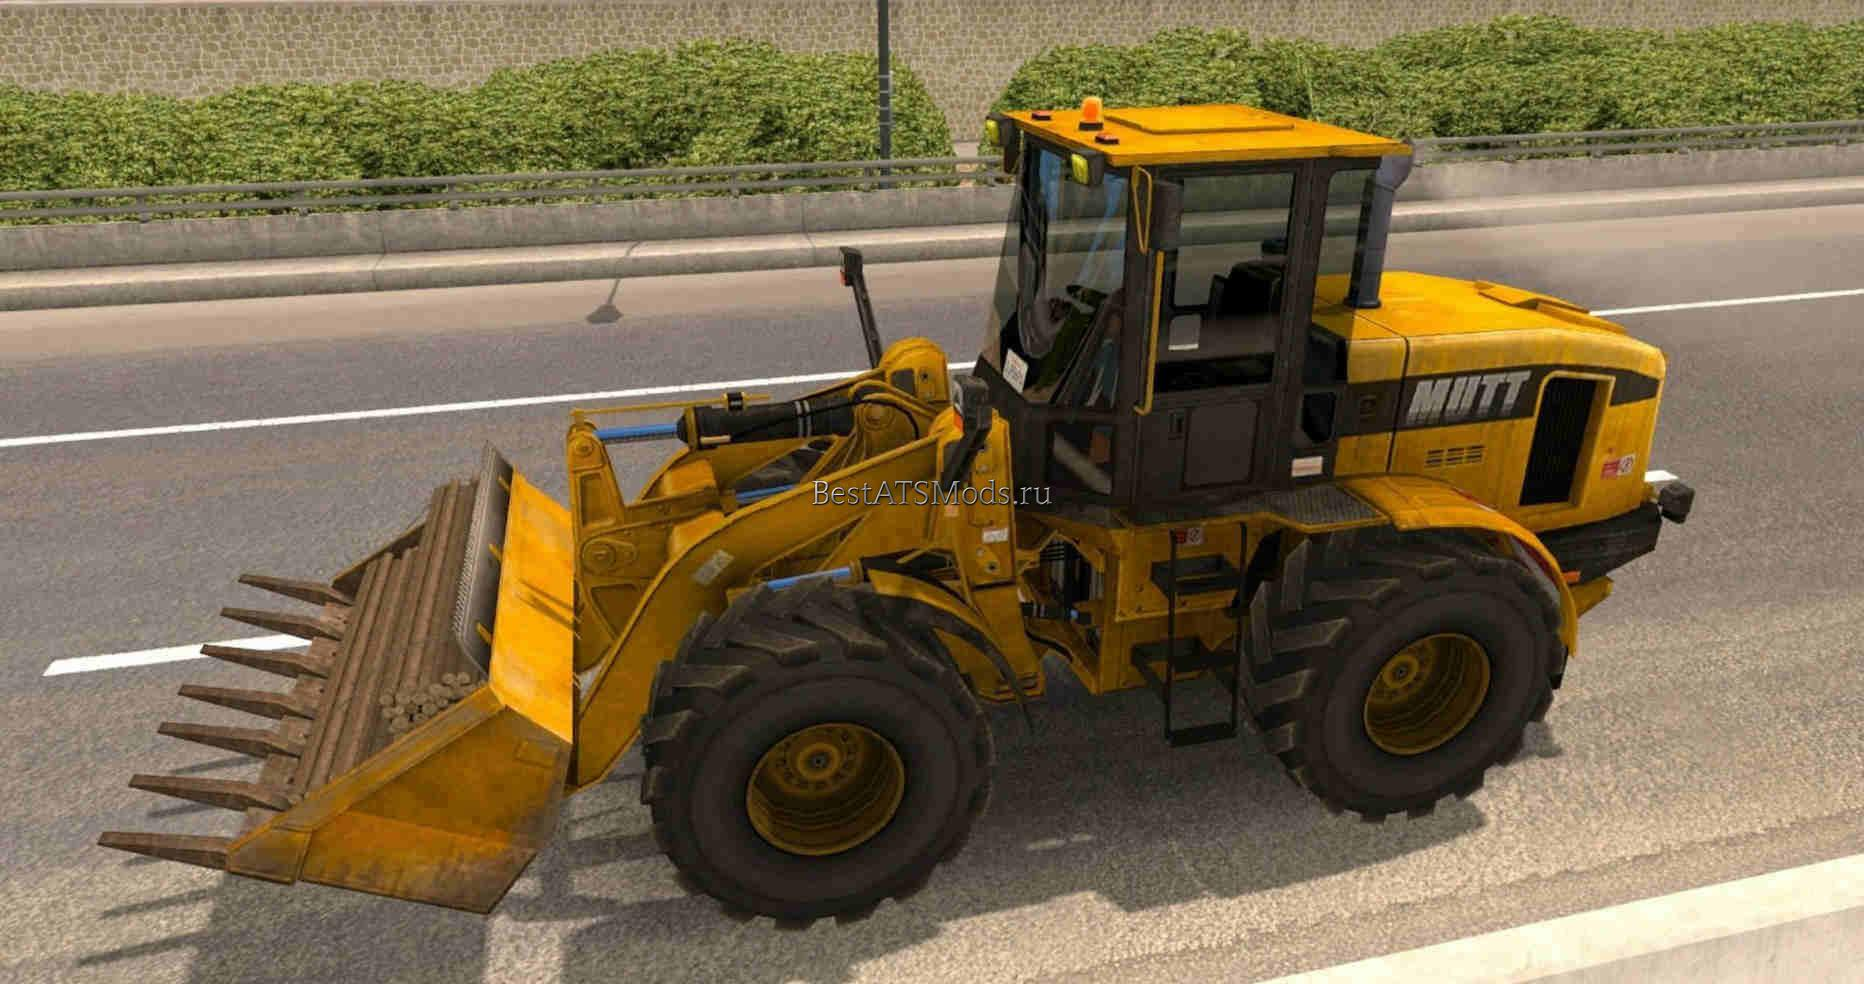 rsz_Мод_бульдозеры_в_траффике_mutt_bulldozer_in_traffic_american_truck_simulator